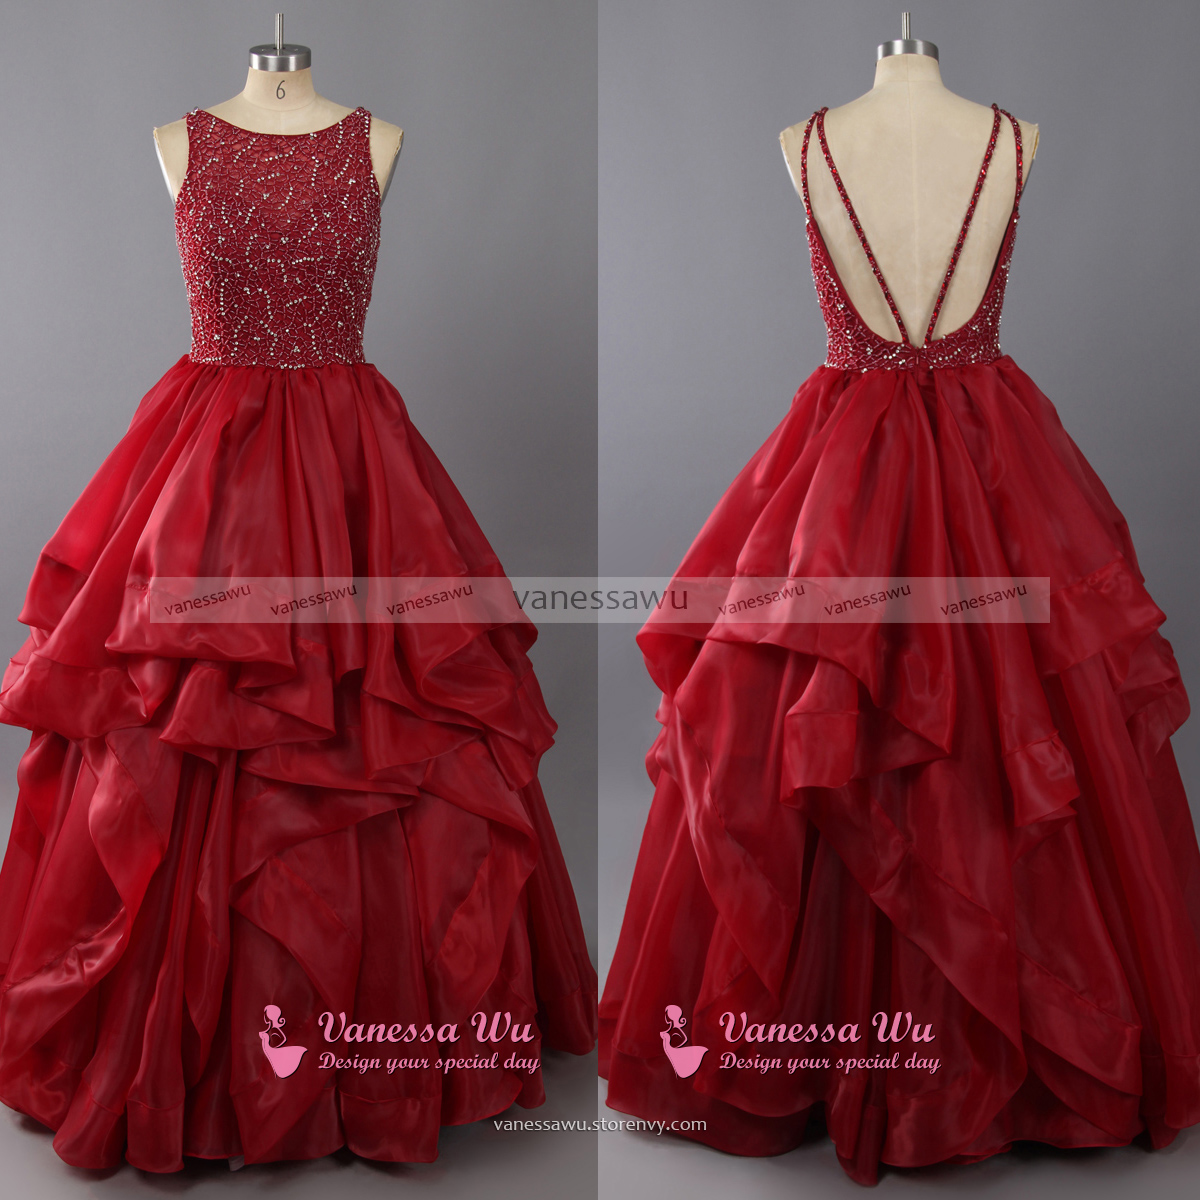 High Neck Prom Dress with Ruffles Tulle Prom Dresses with